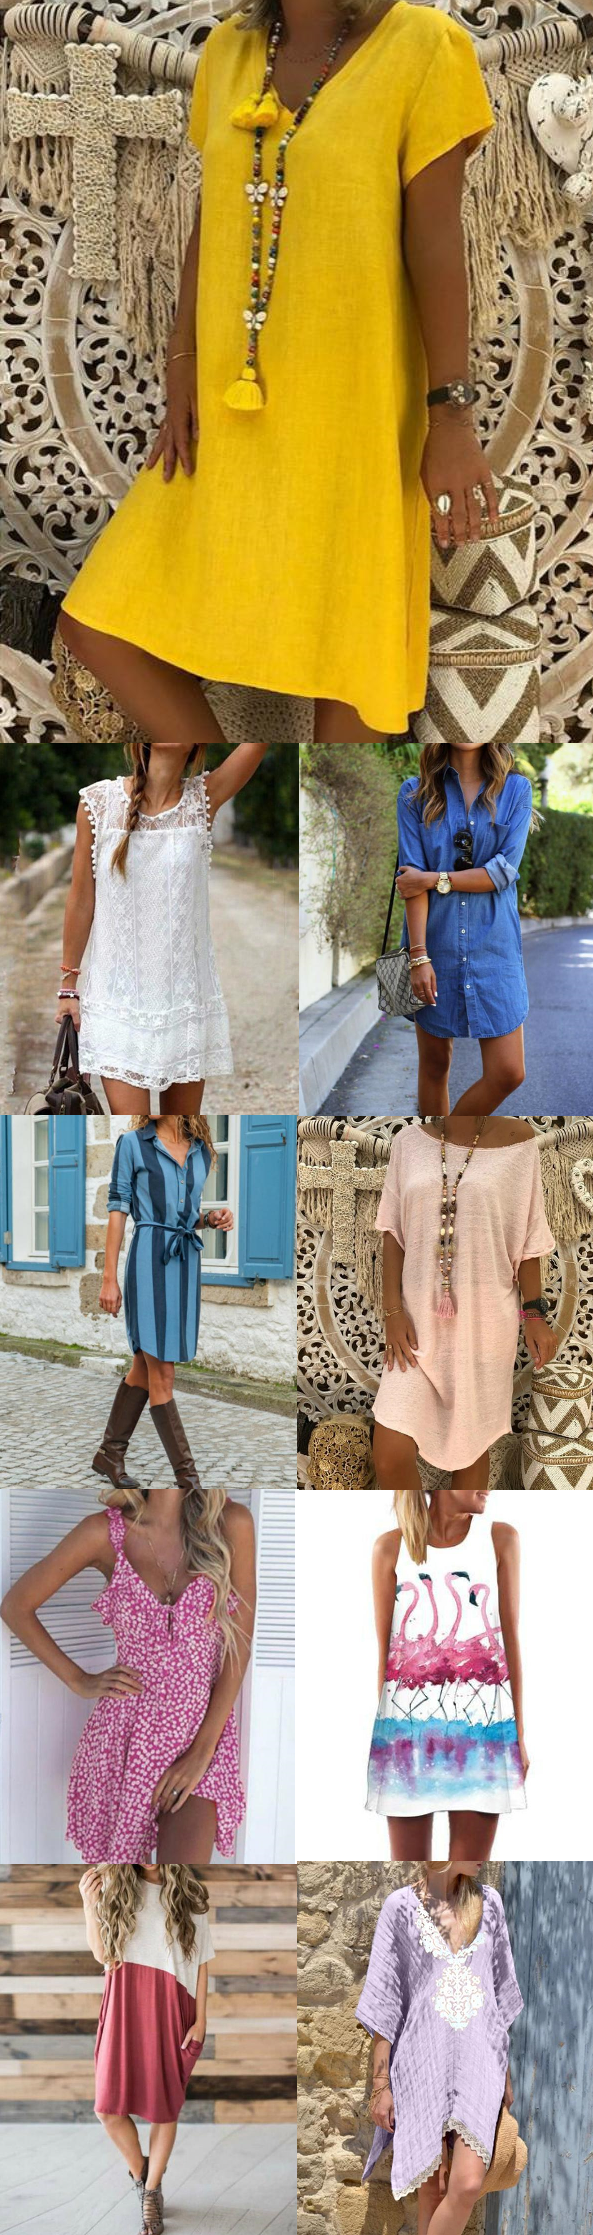 8+ Mini Dresses for You.Must Have It for Vacation Holiday.Free